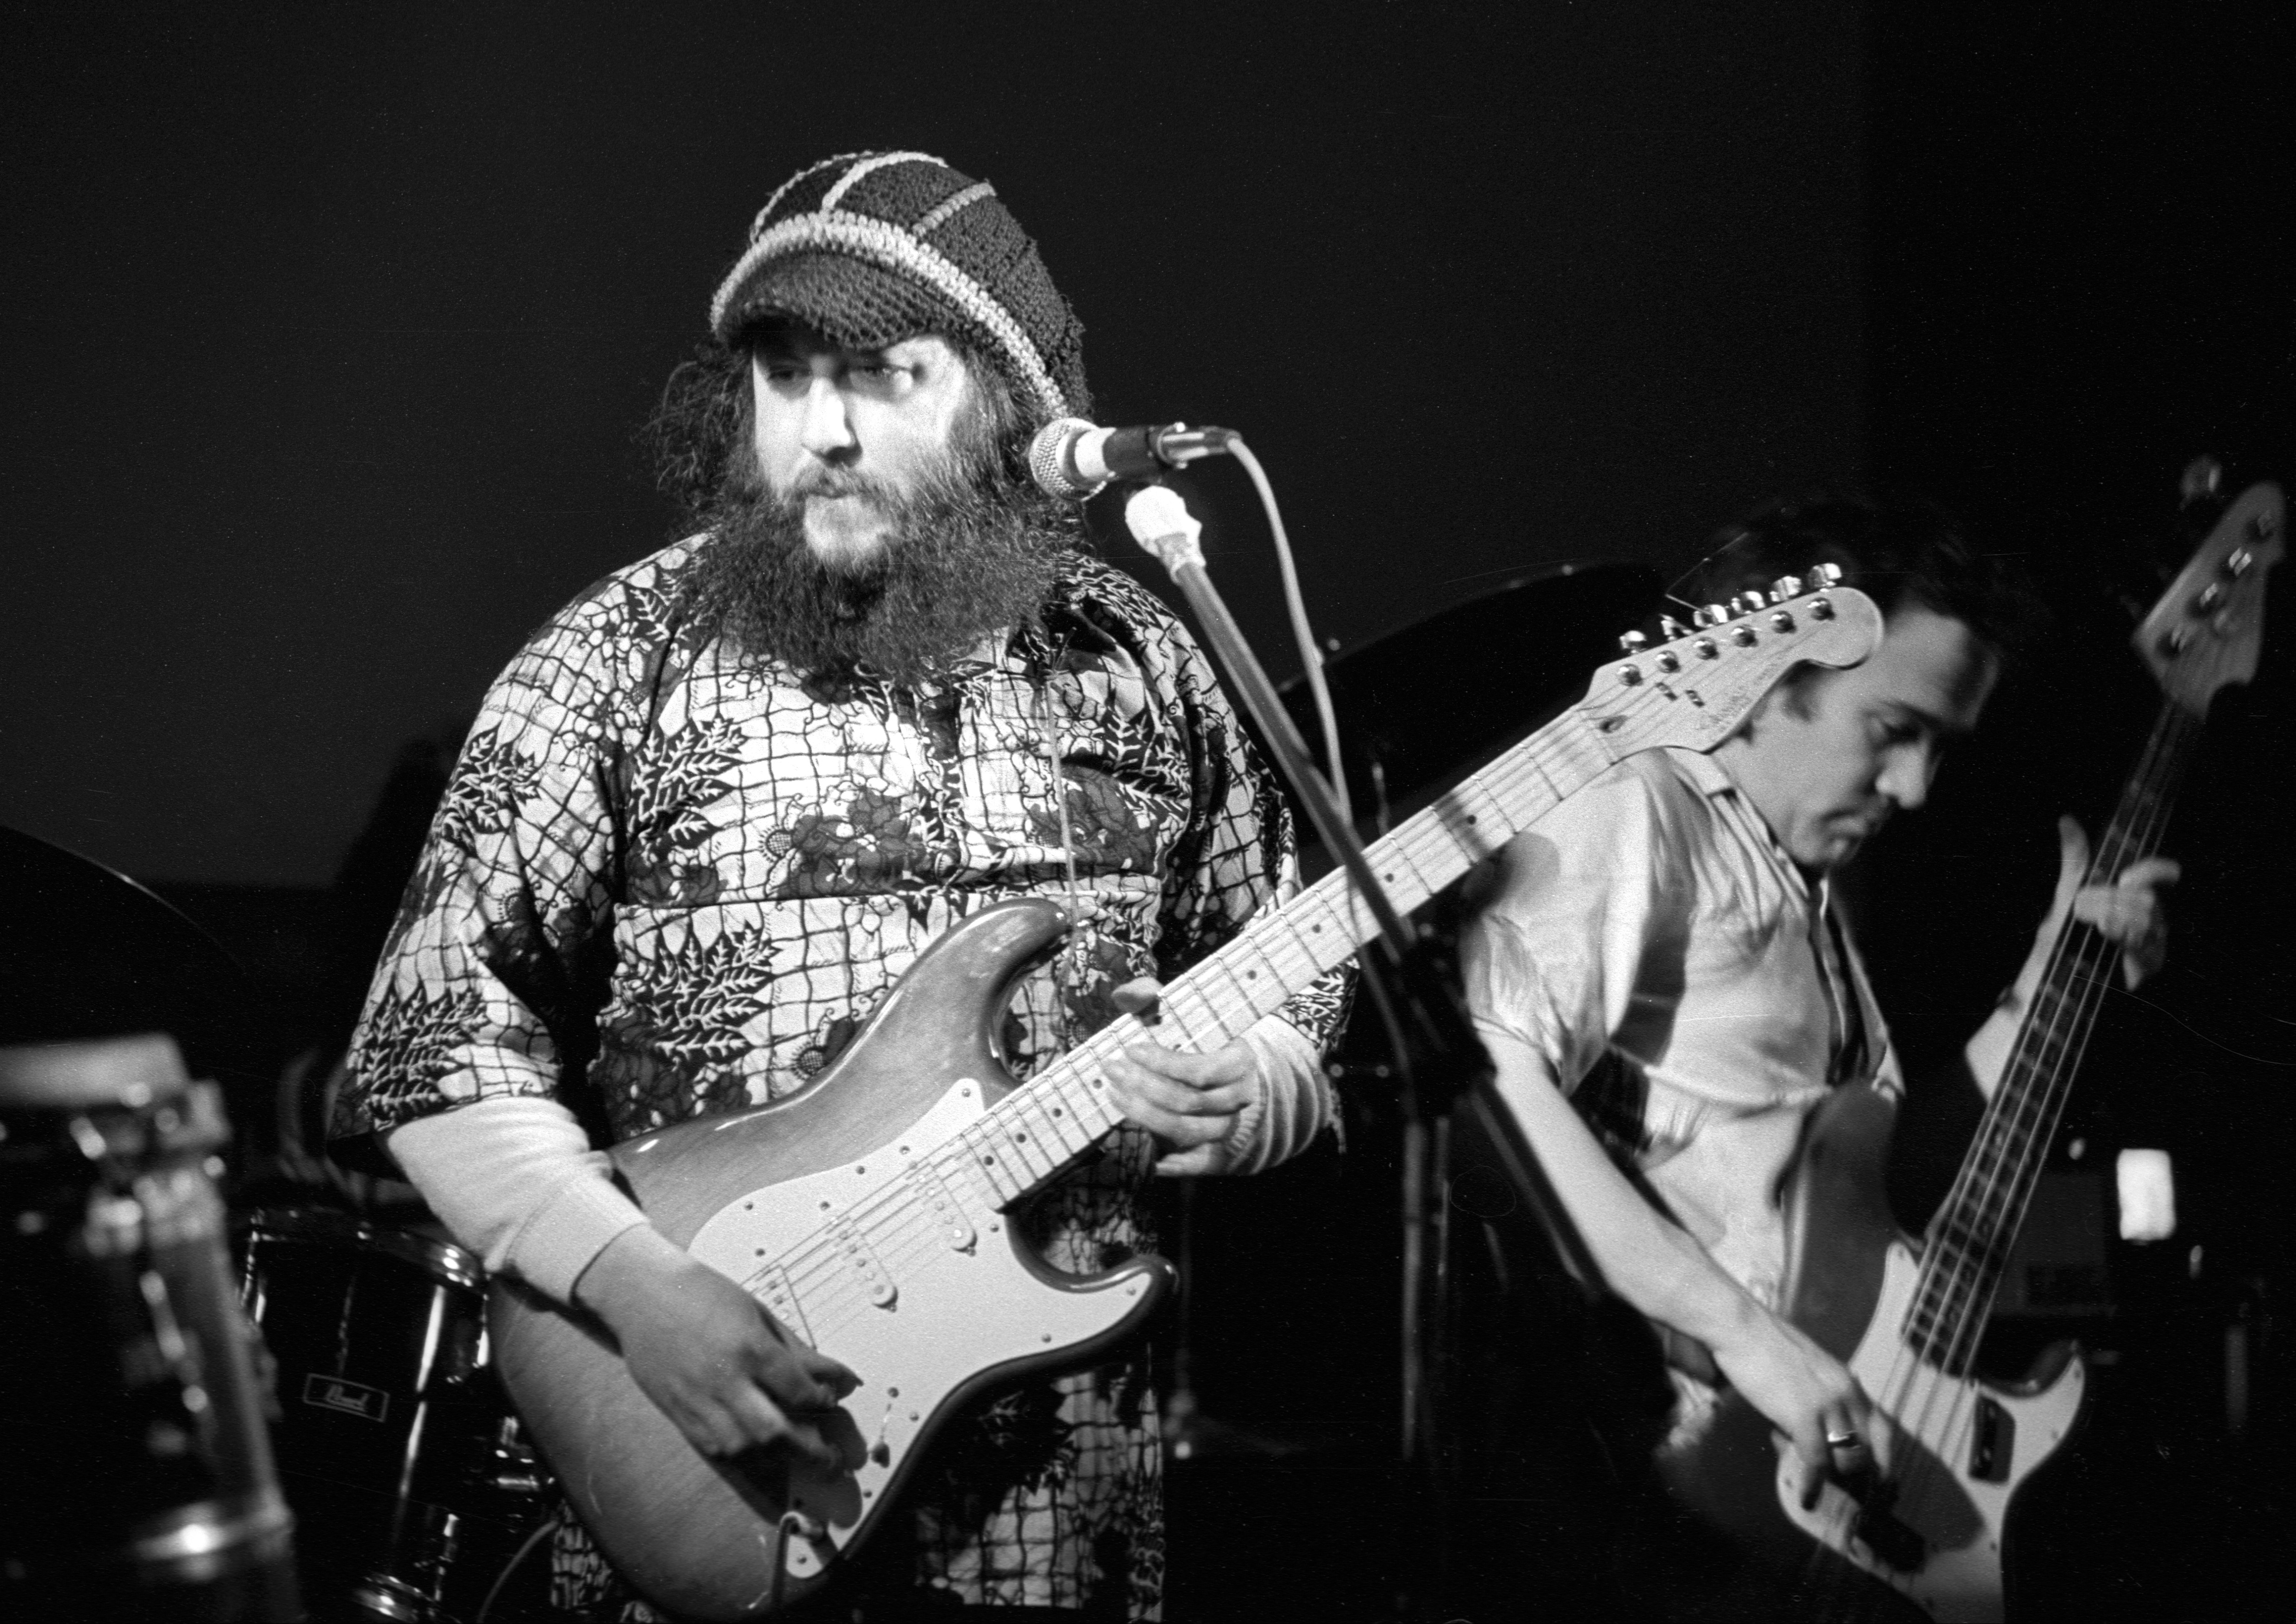 English blues guitarist and former member of Fleetwood Mac, Peter Green on stage at the Mean Fiddler, London, February 1985.